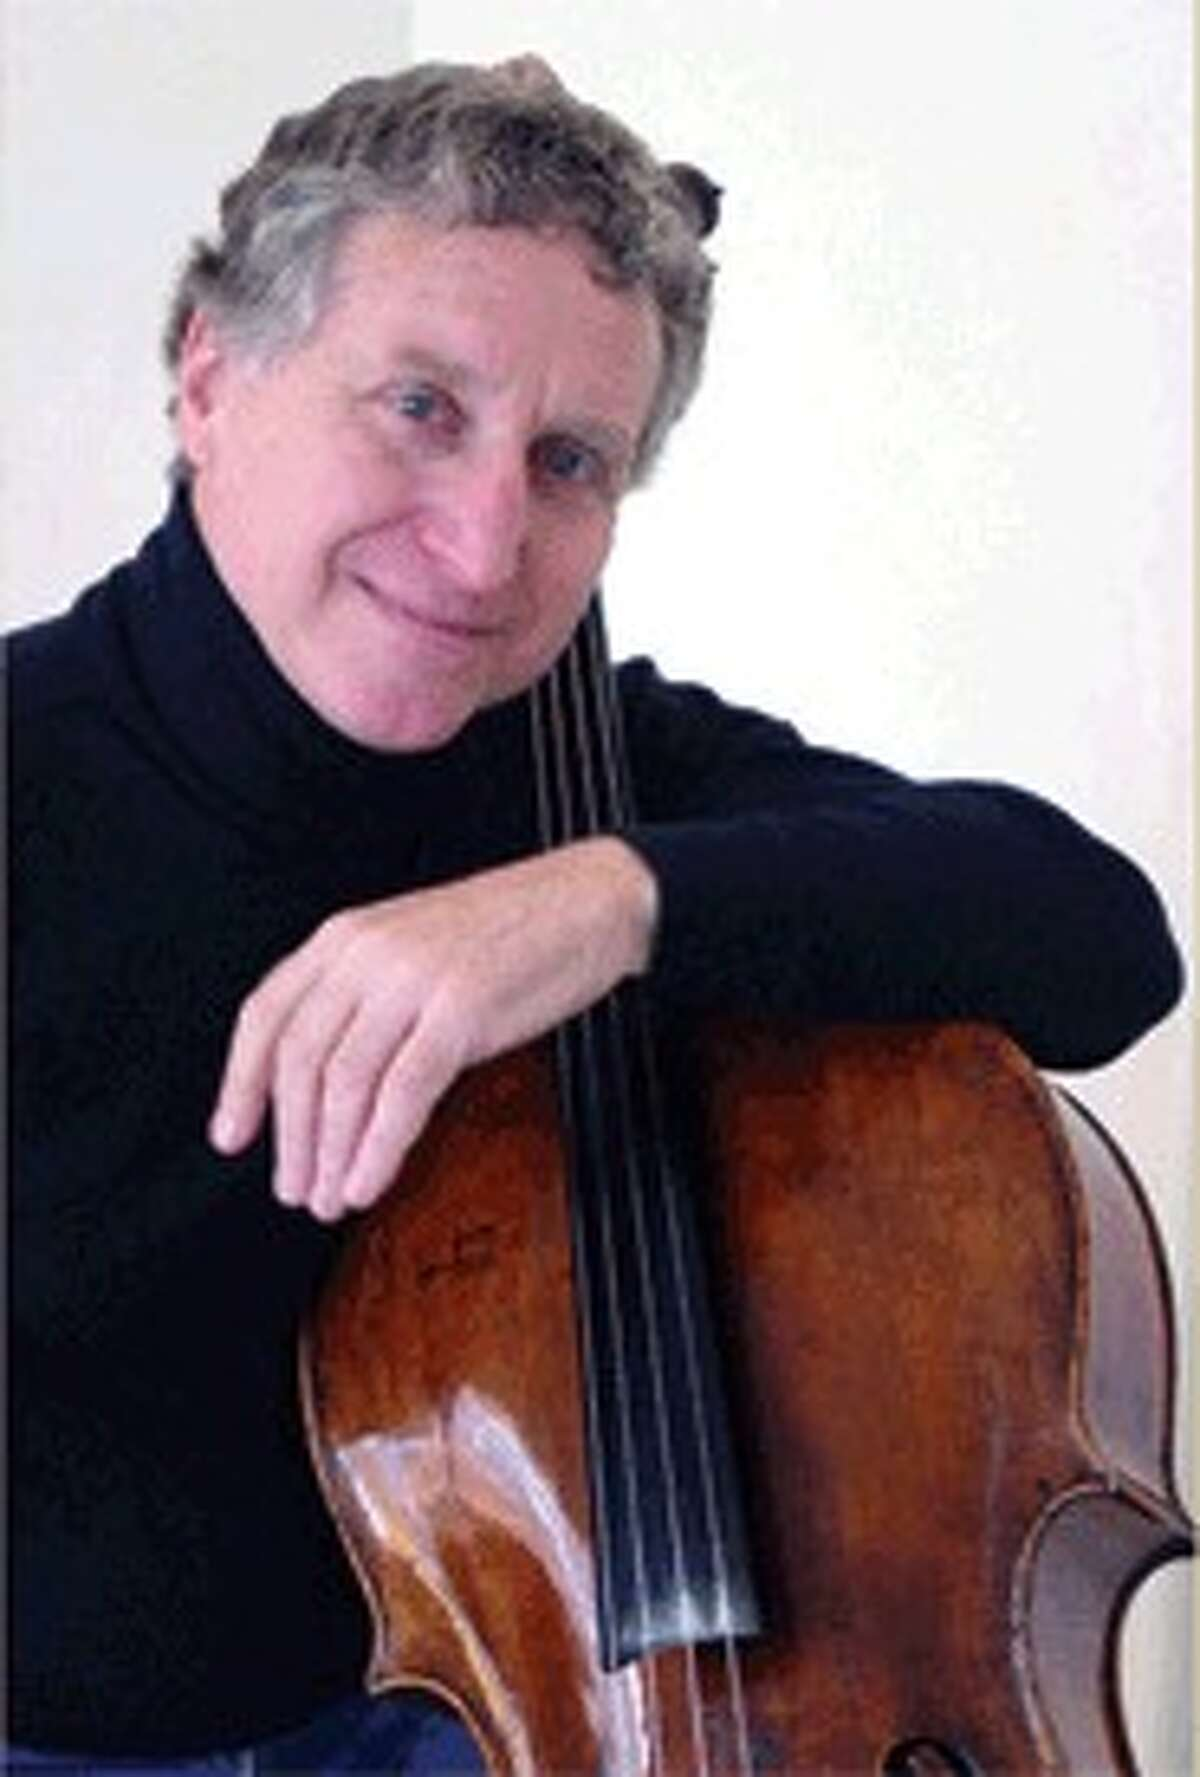 Yehuda Hanani leads at quartet in